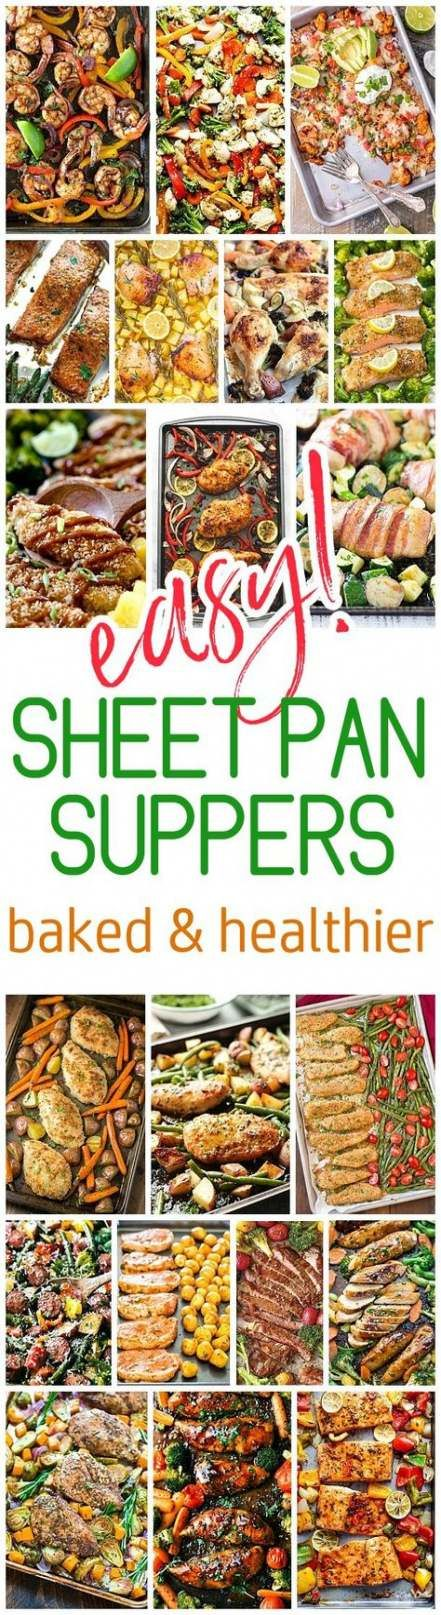 68+  Ideas for fitness recipes easy dinners #fitness #recipes